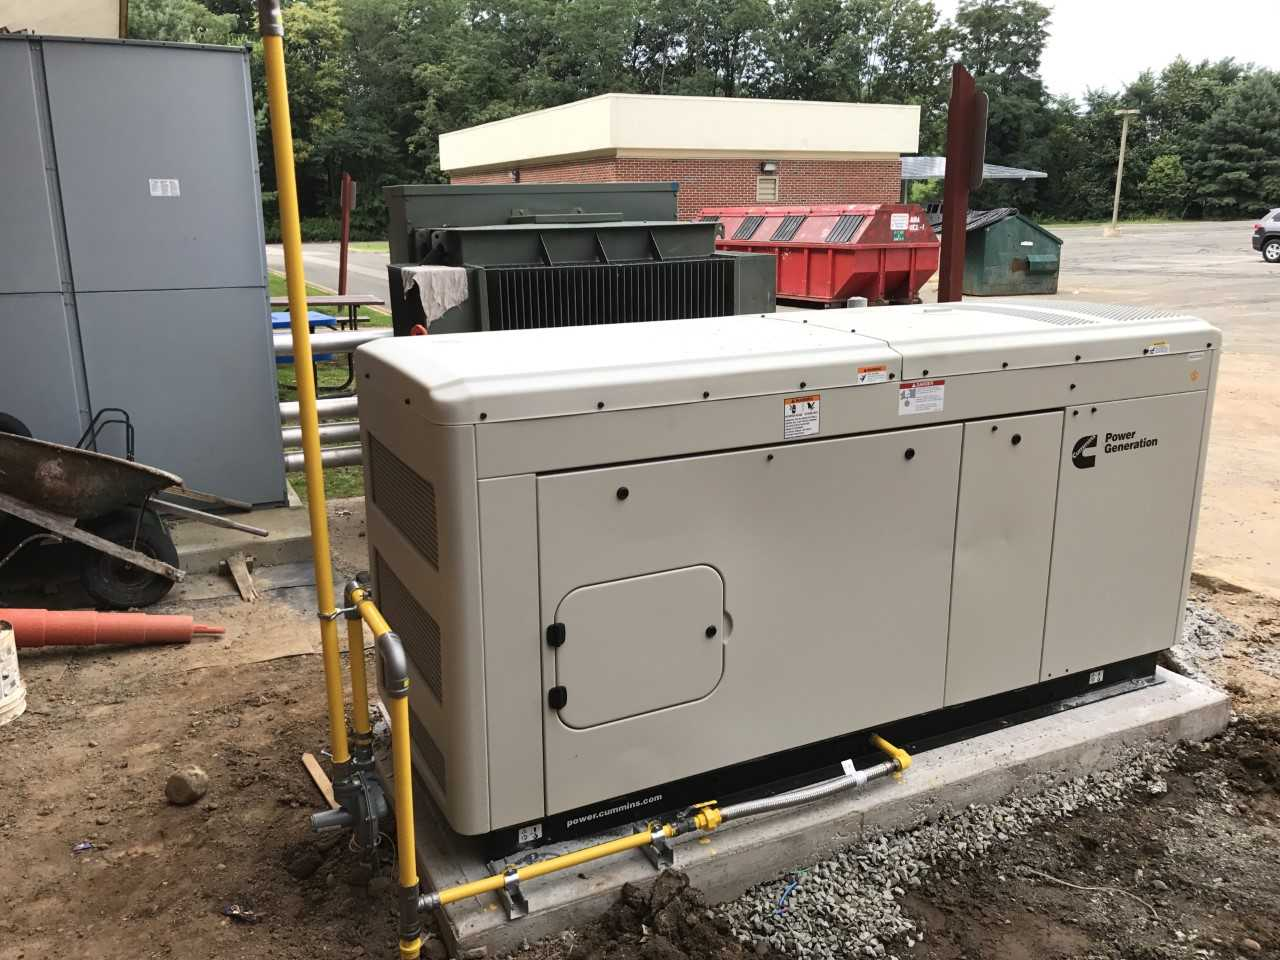 Cummins 36KW Natural Gas, Commercial Generator, Morristown, New Jersey